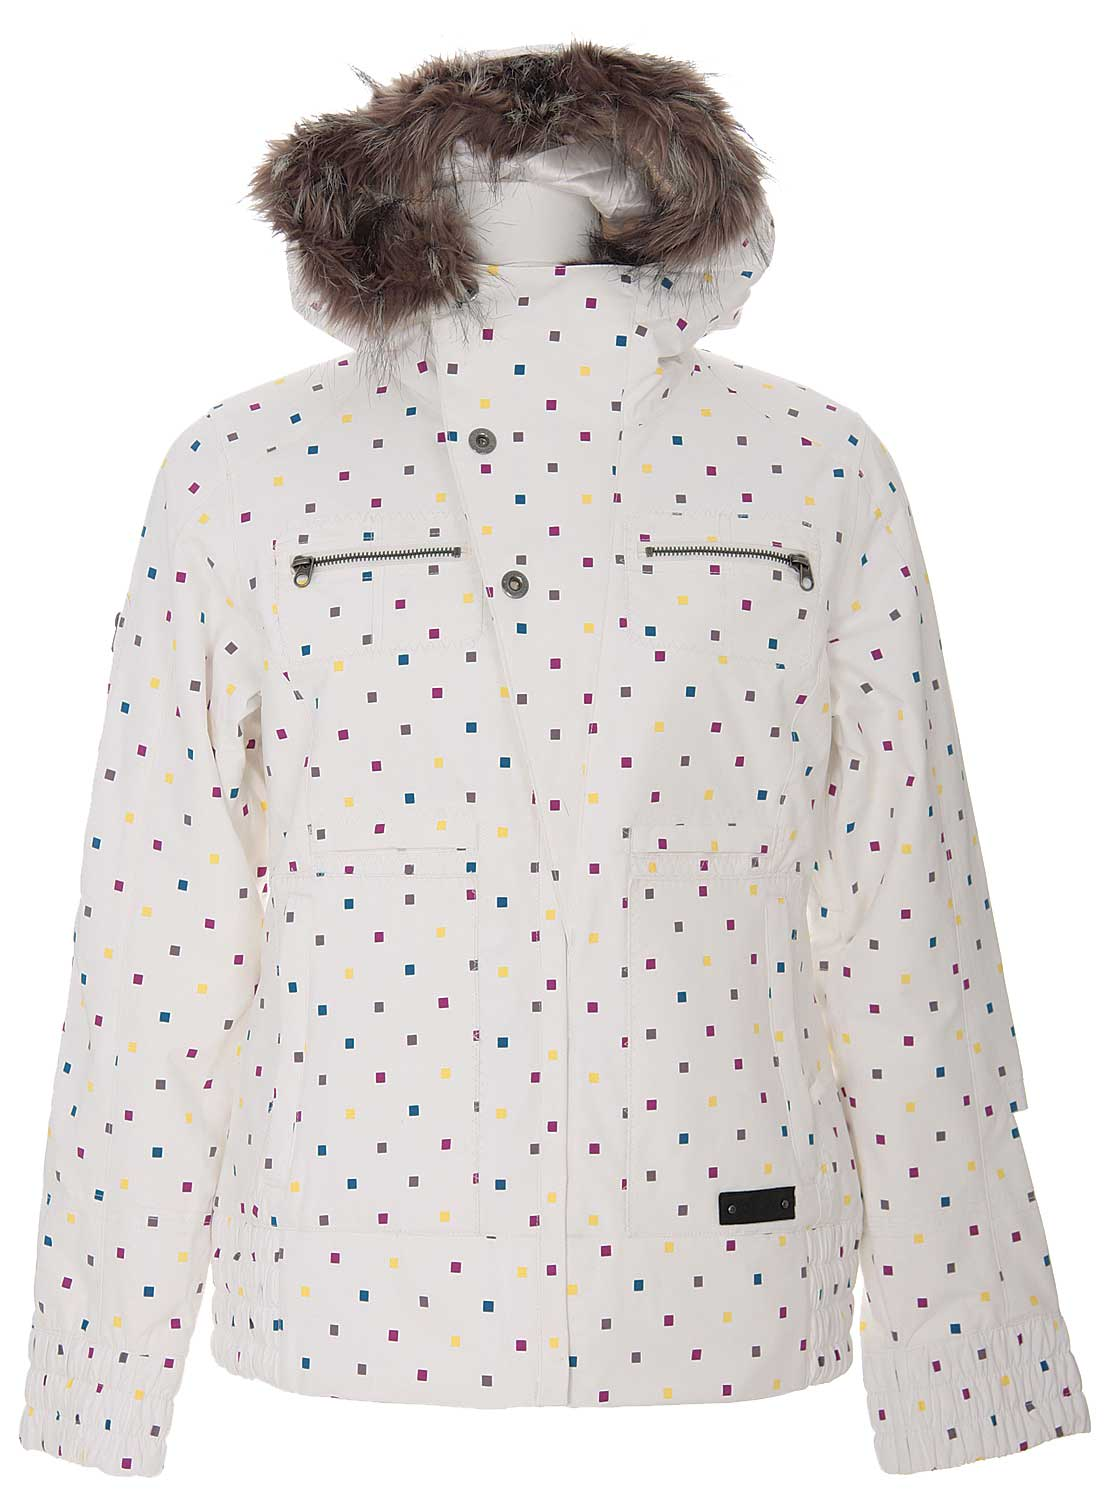 Shop for Burton Lush Snowboard Jacket Multi Polka Squares Print - Women's